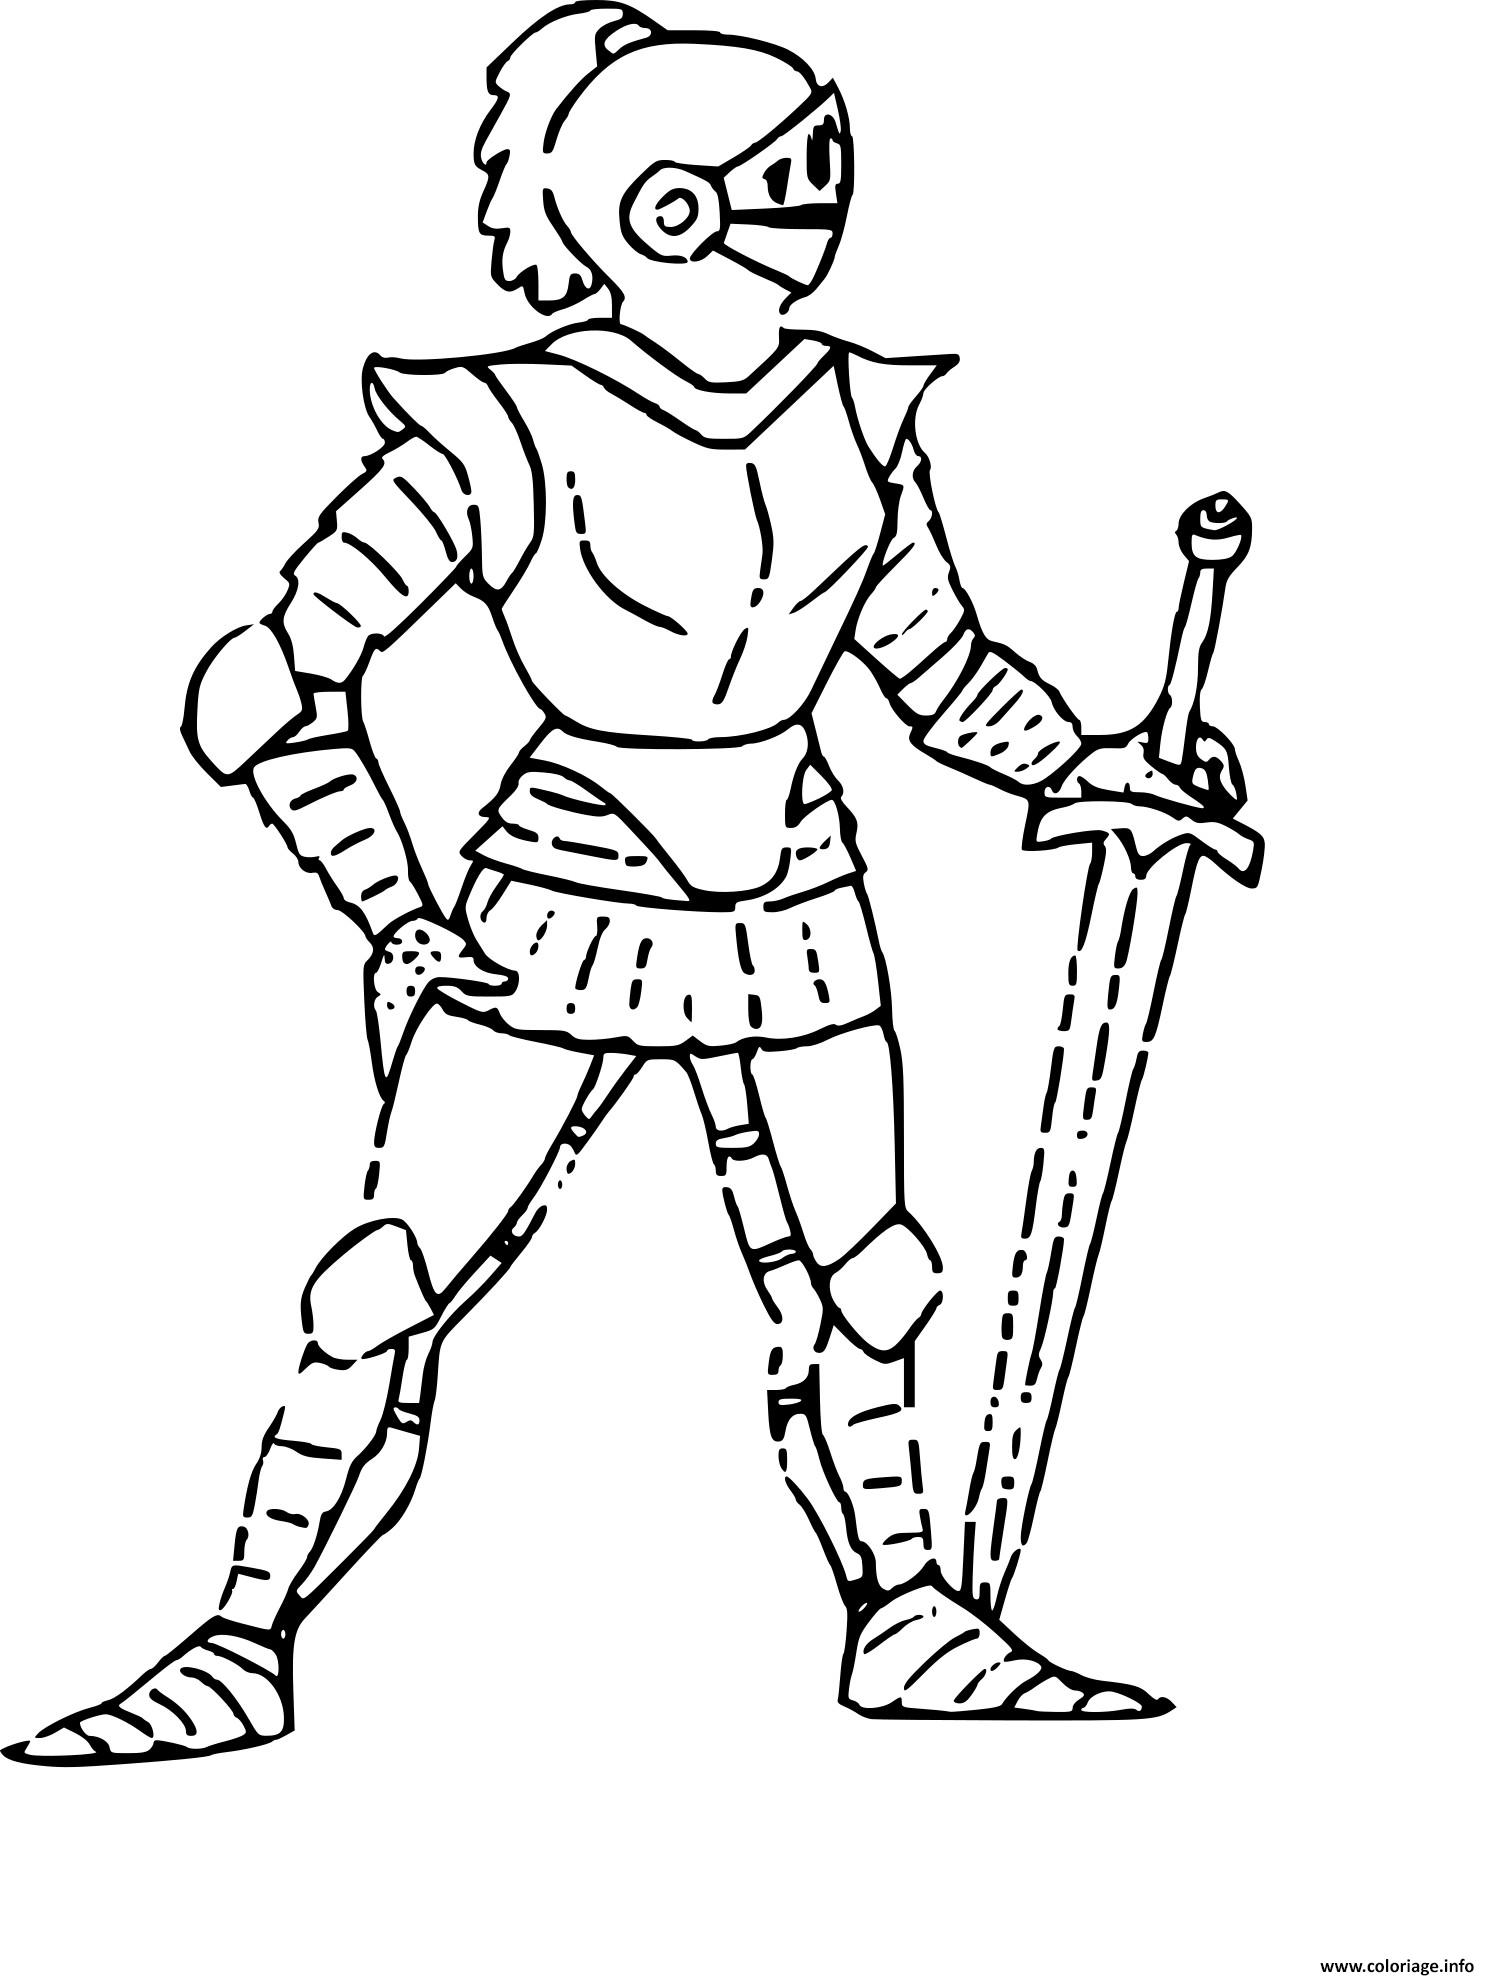 Coloriage chevalier et son epee dessin - Coloriage chevaliers ...